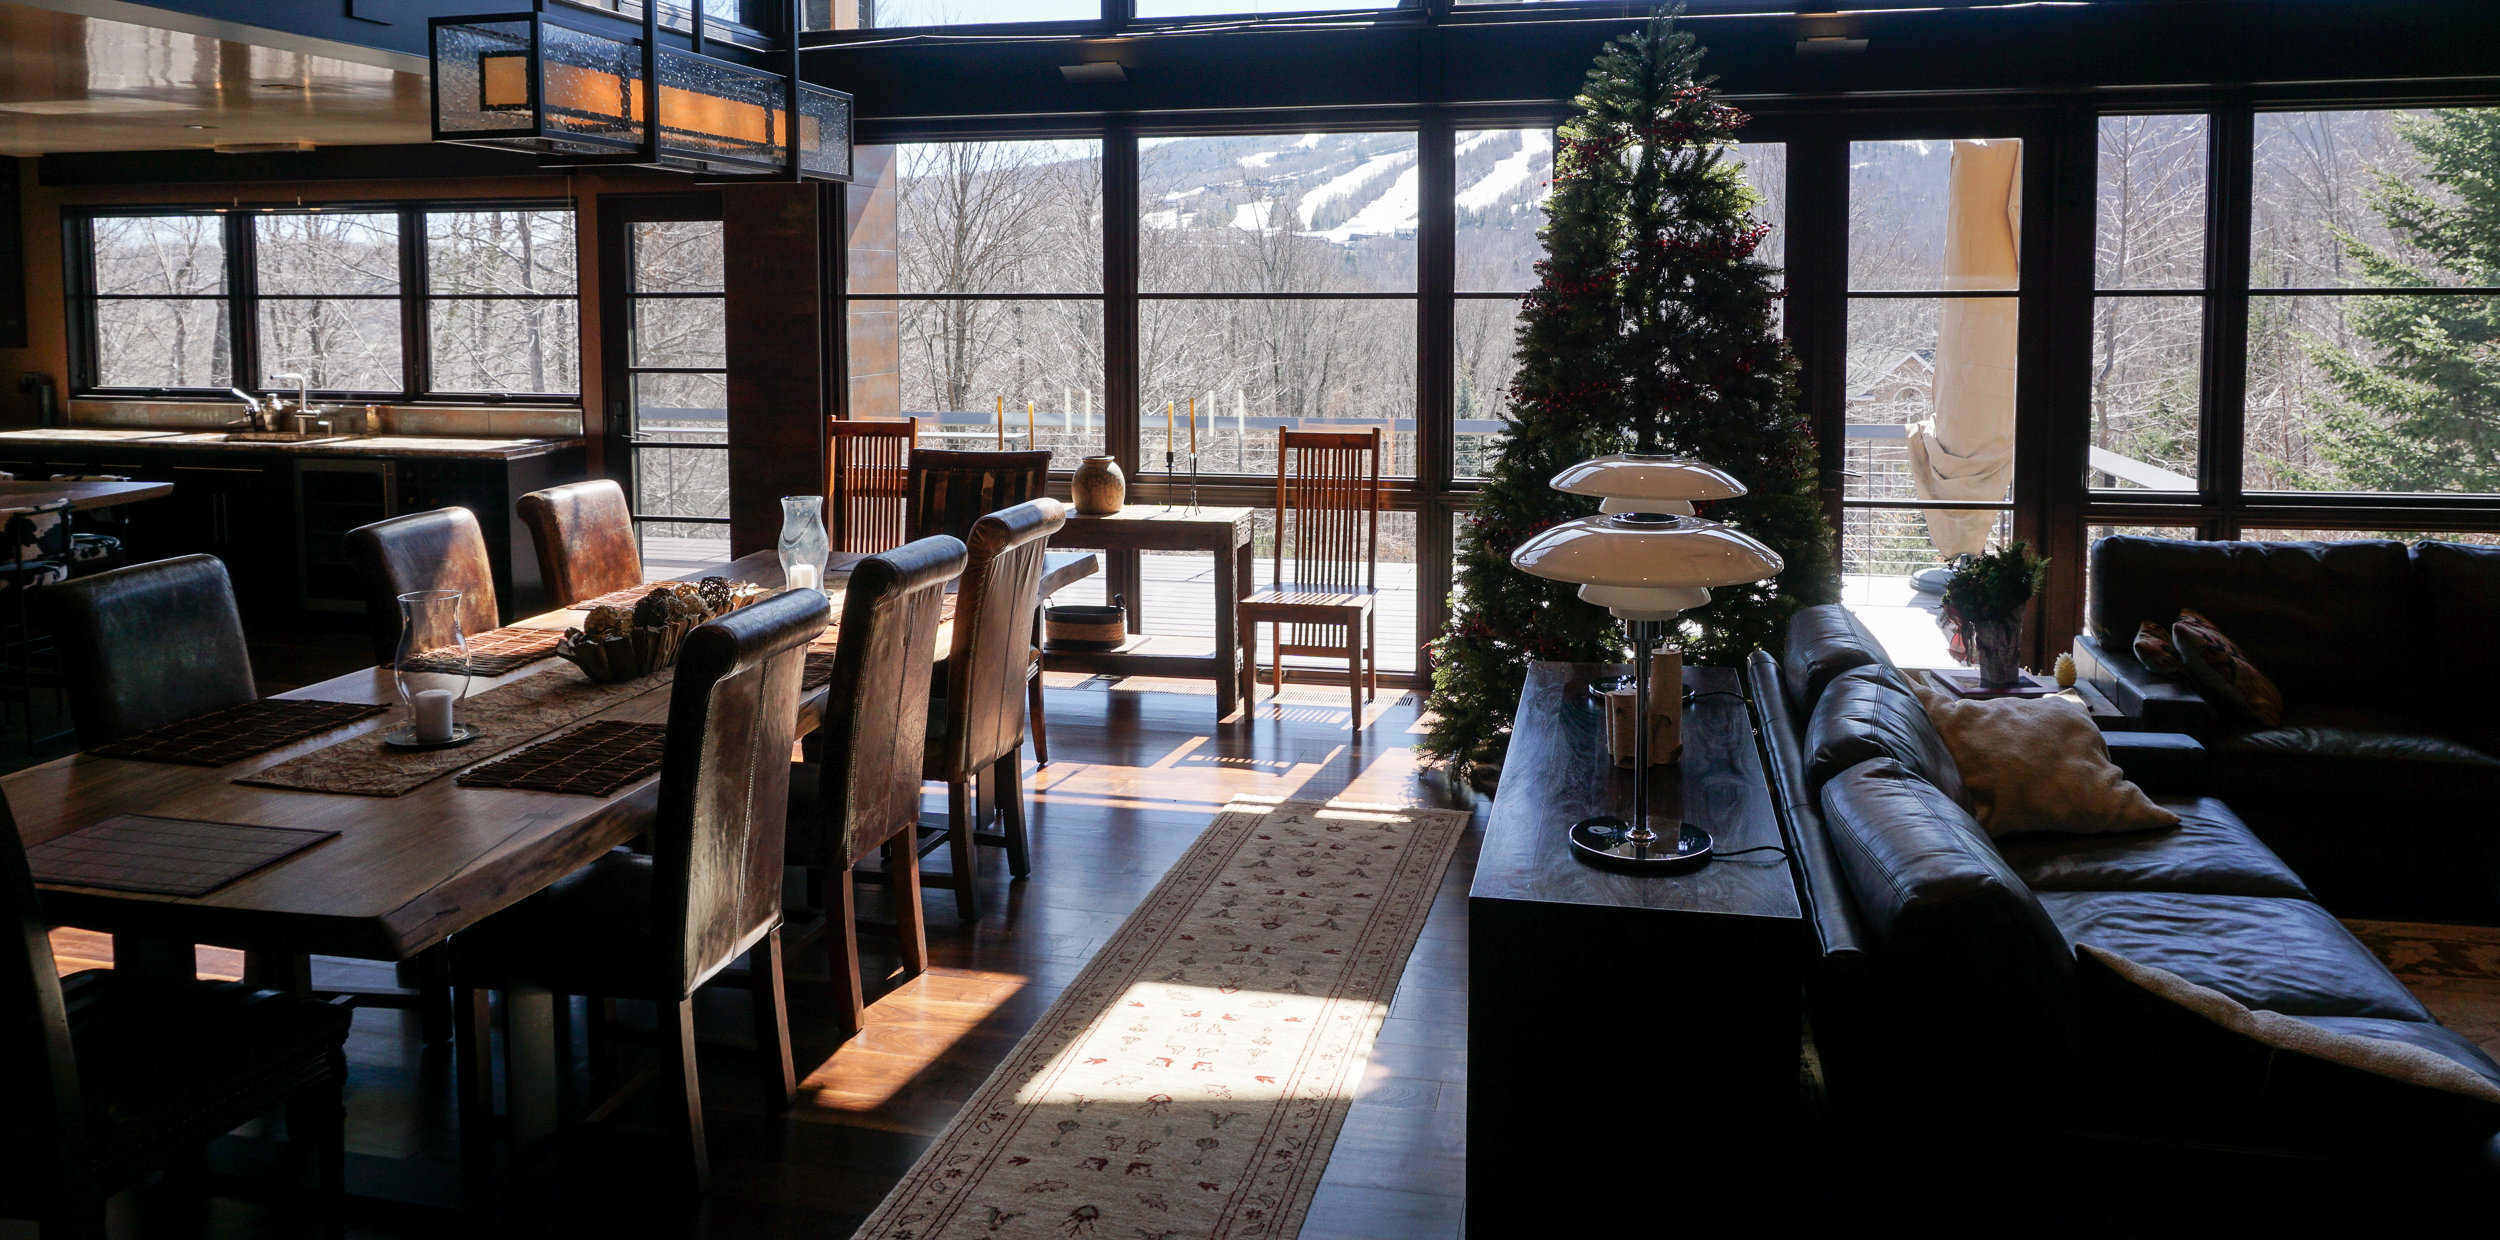 Luxury home interior with view of Vermont mountains